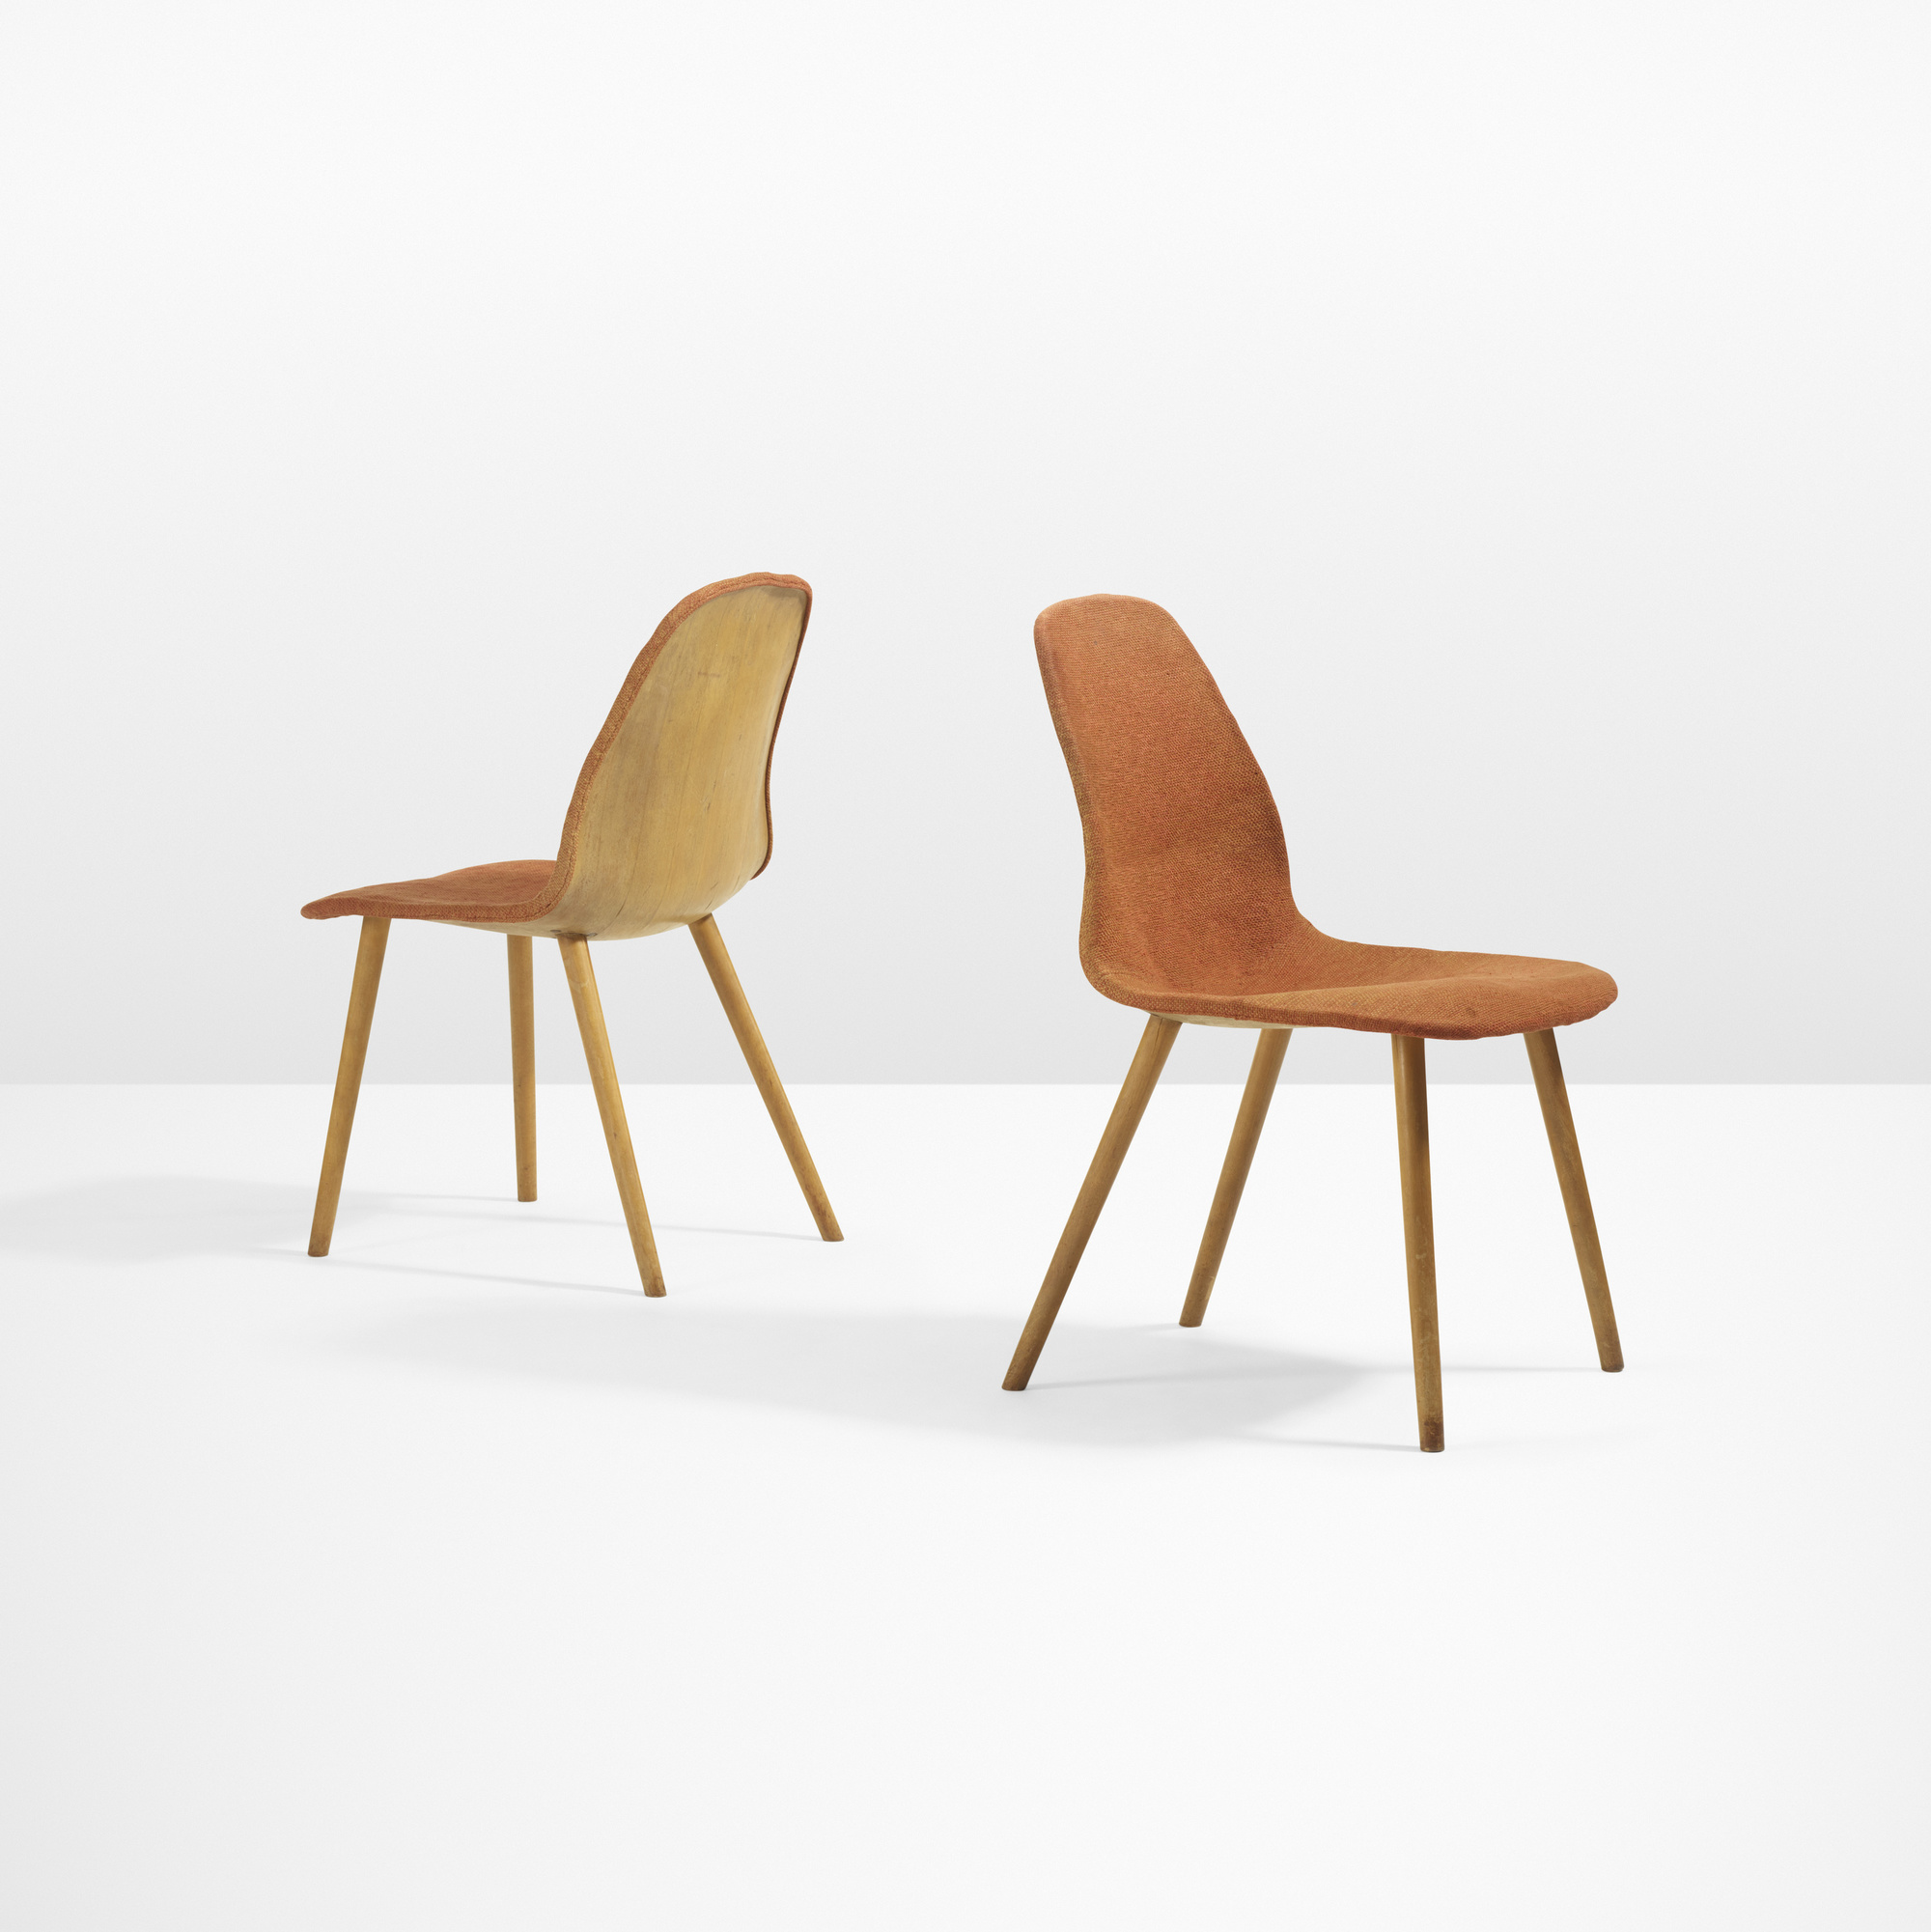 chair design competition 2017 what are pool chairs made out of 15 charles eames and eero saarinen rare pair